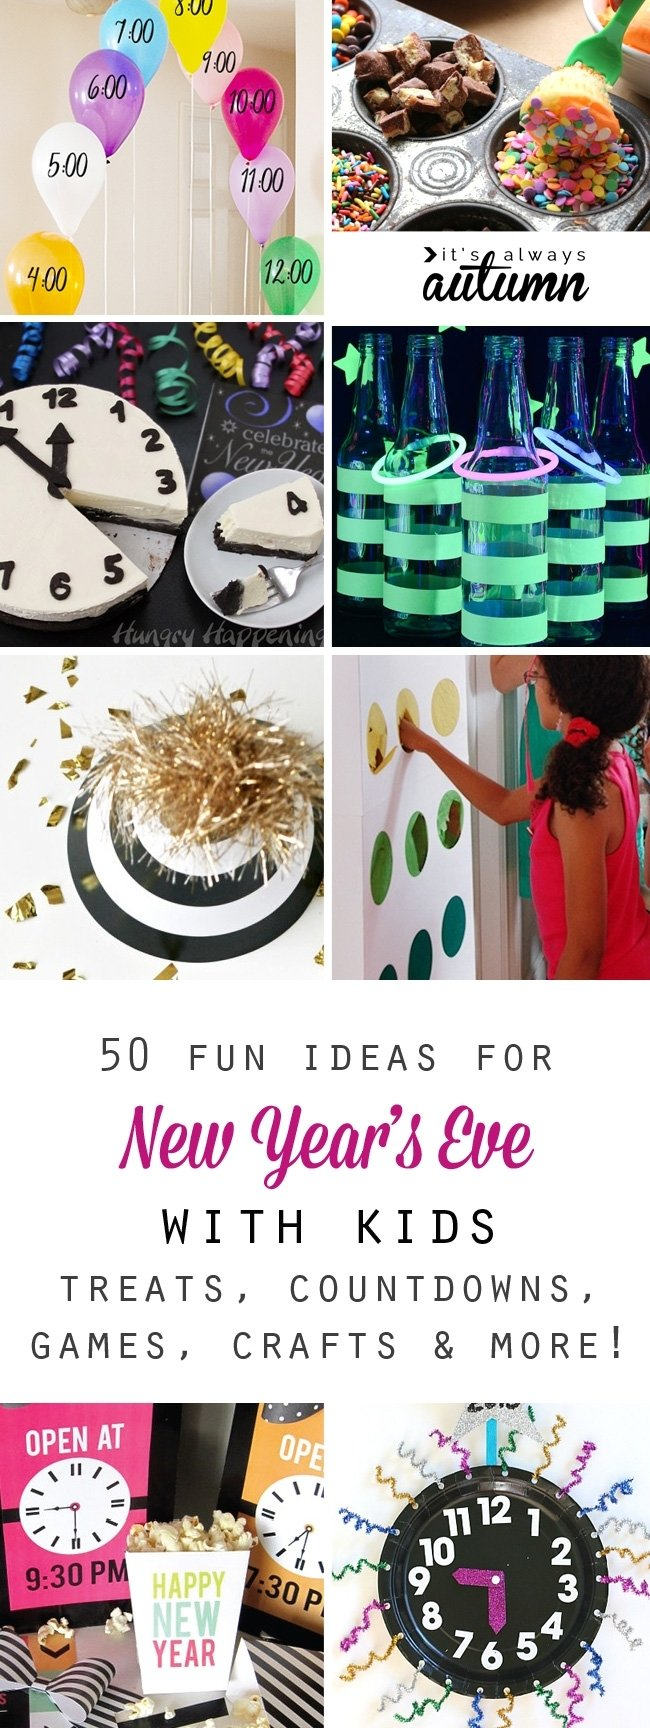 10 Unique New Years Eve Ideas For Kids 50 best ideas for celebrating new years eve with kids its always 4 2020